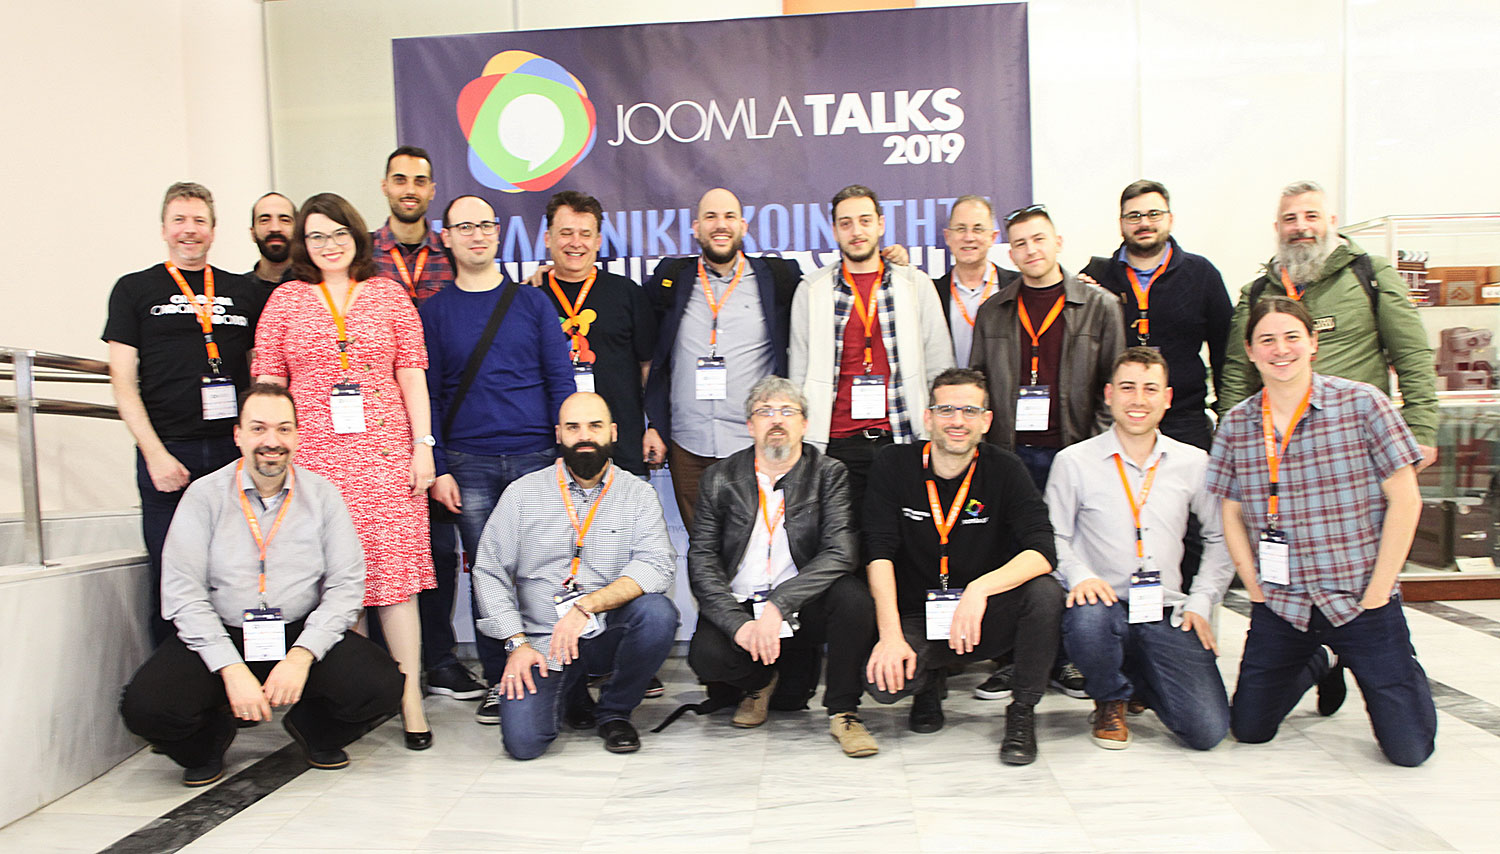 Joomla Greek Community Joomla Talks 2019